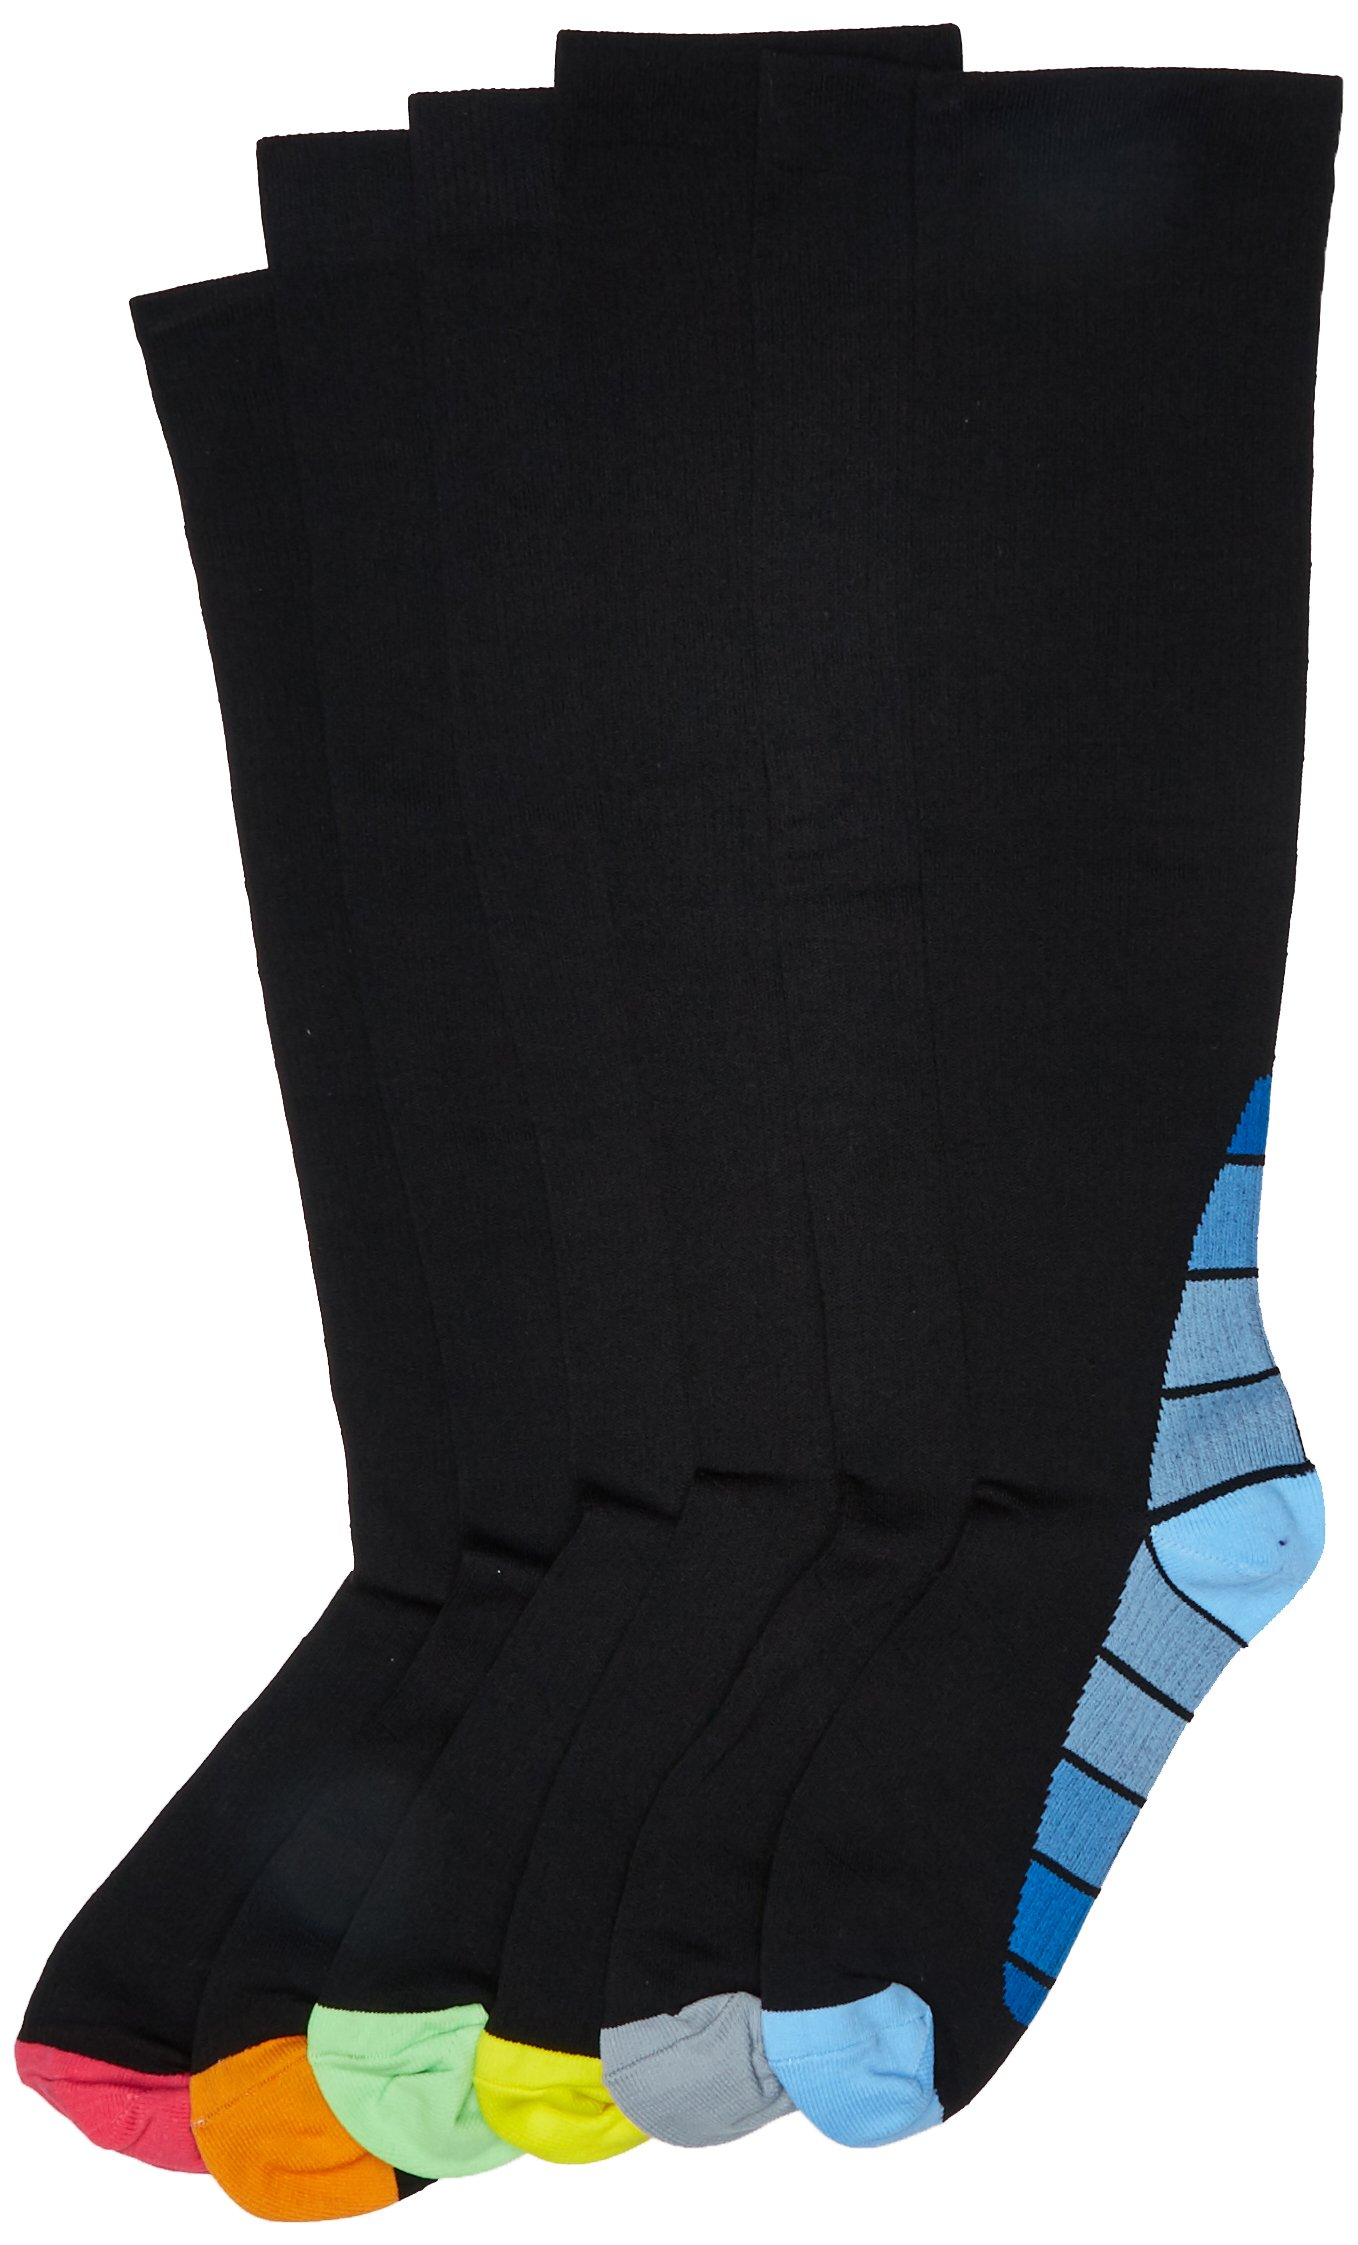 PU Health Unisex Compression Antibacterial Sock, 6 Count